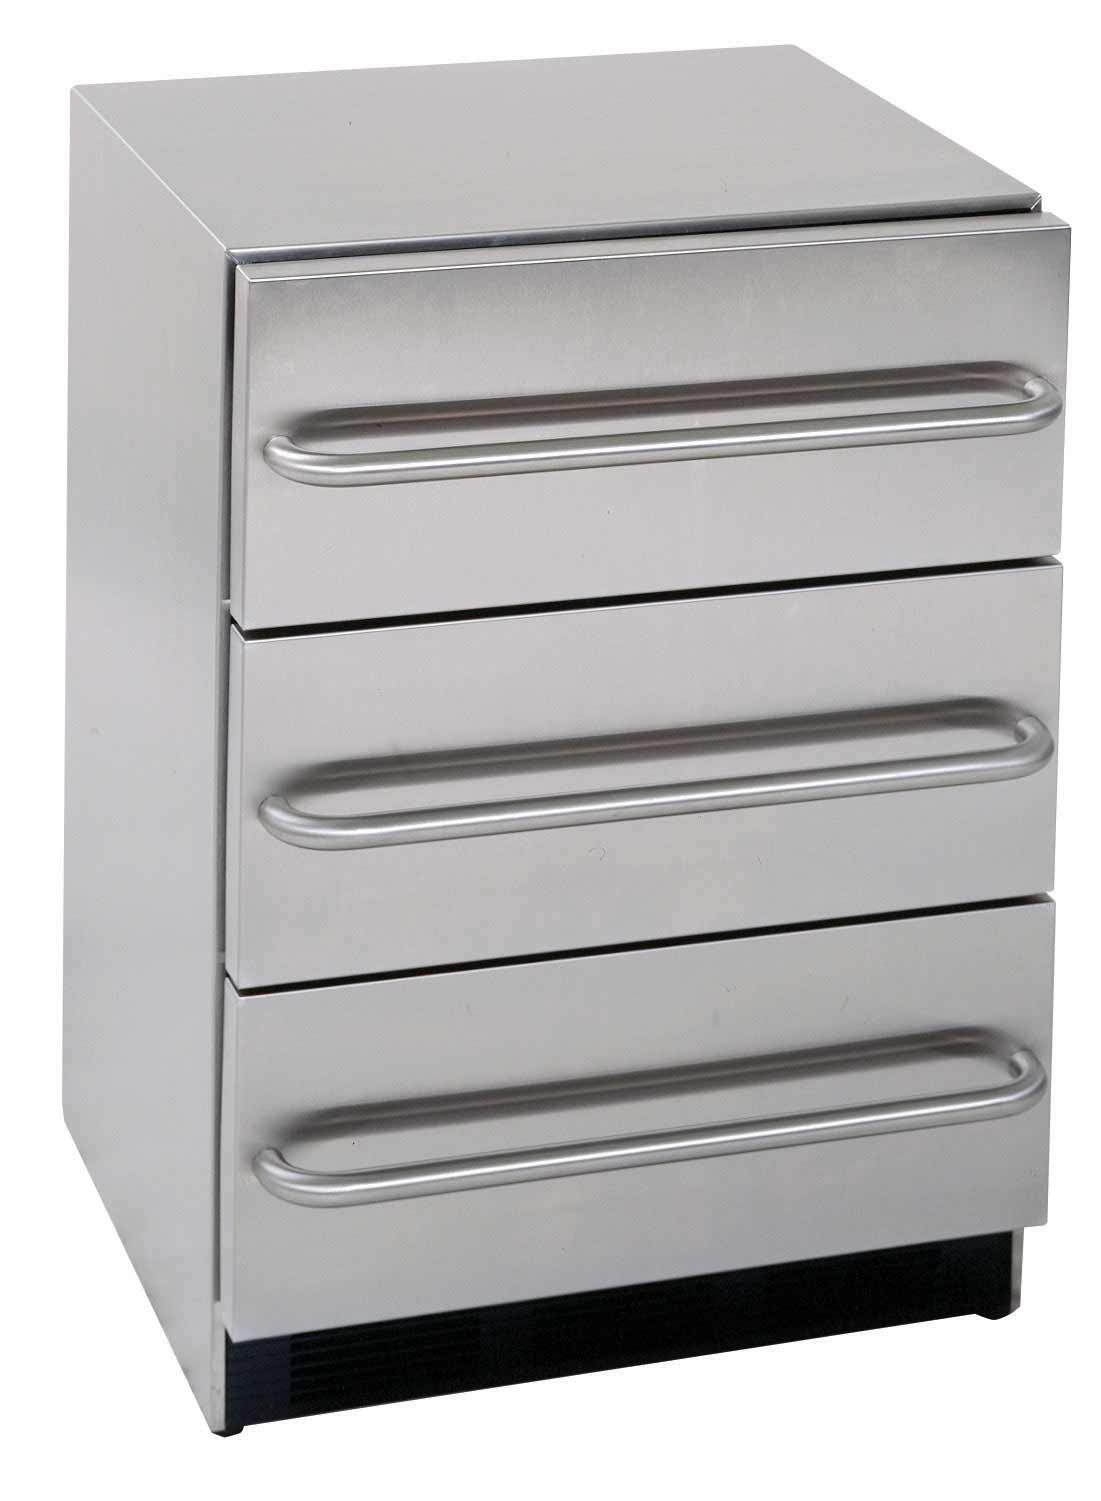 SUMMIT all refrigerator no freezer with 3 drawers